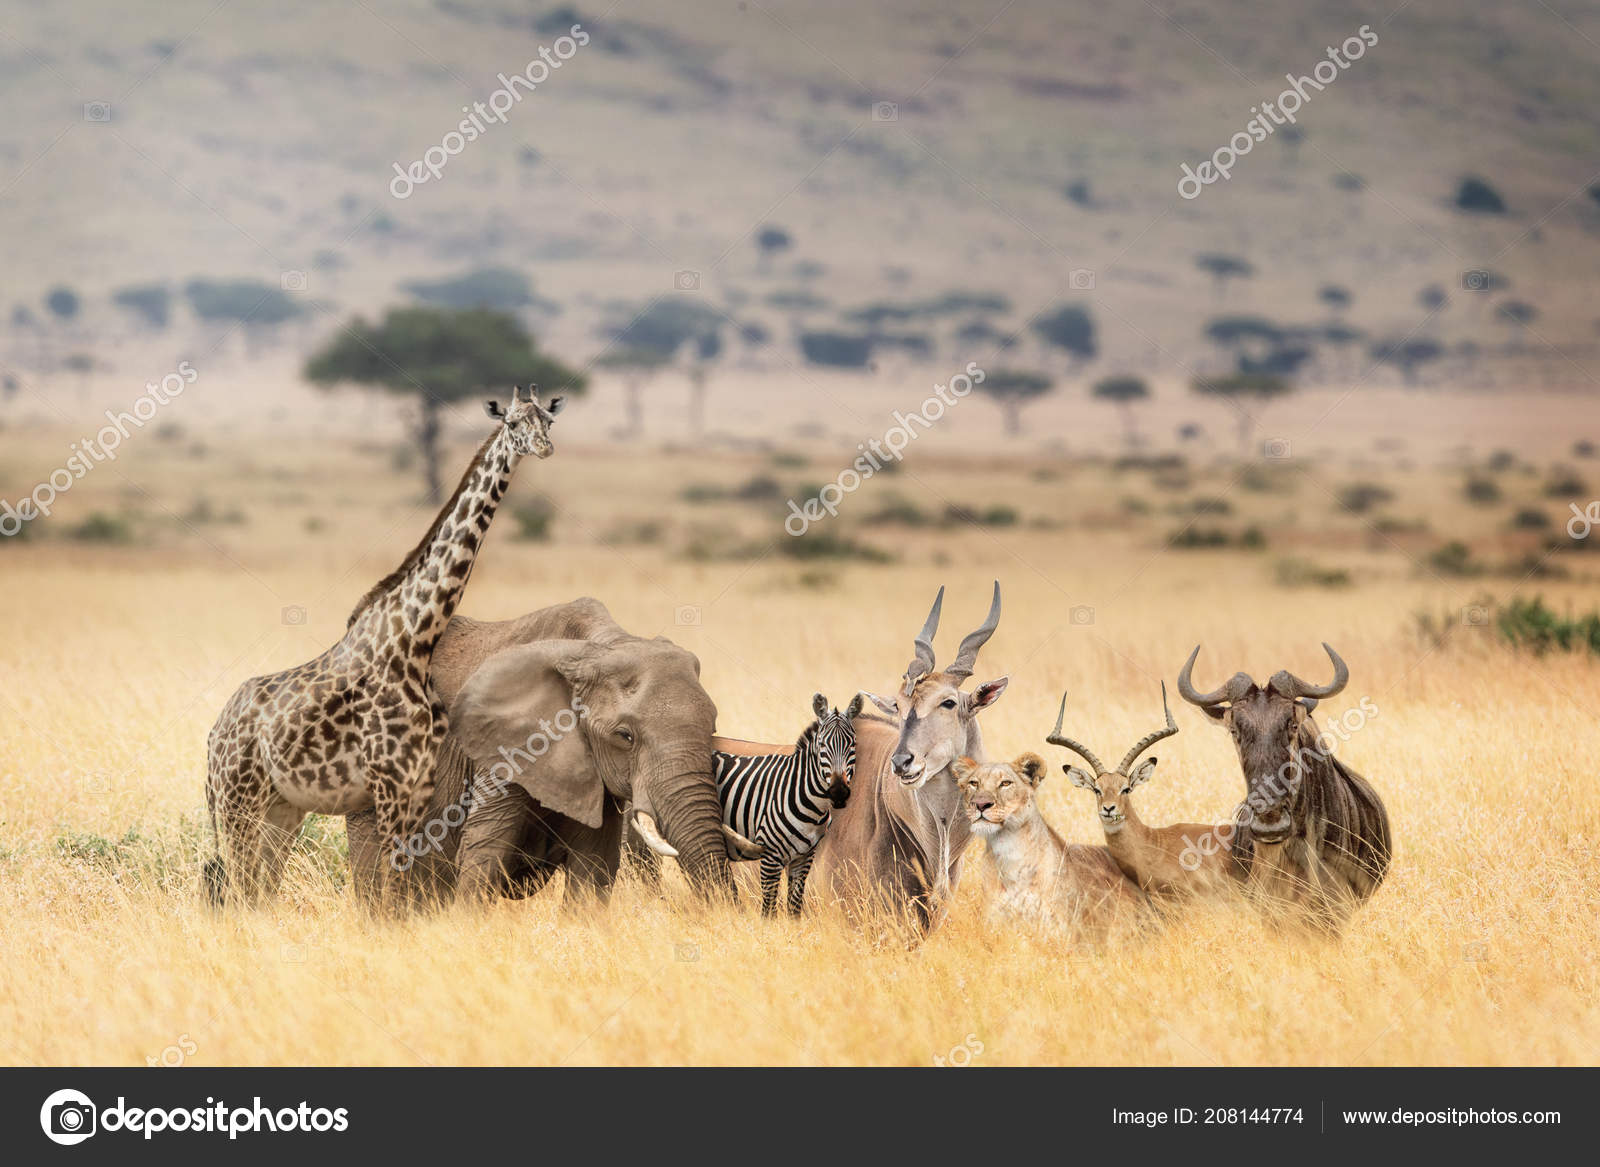 Group of wild animals together - photo#52